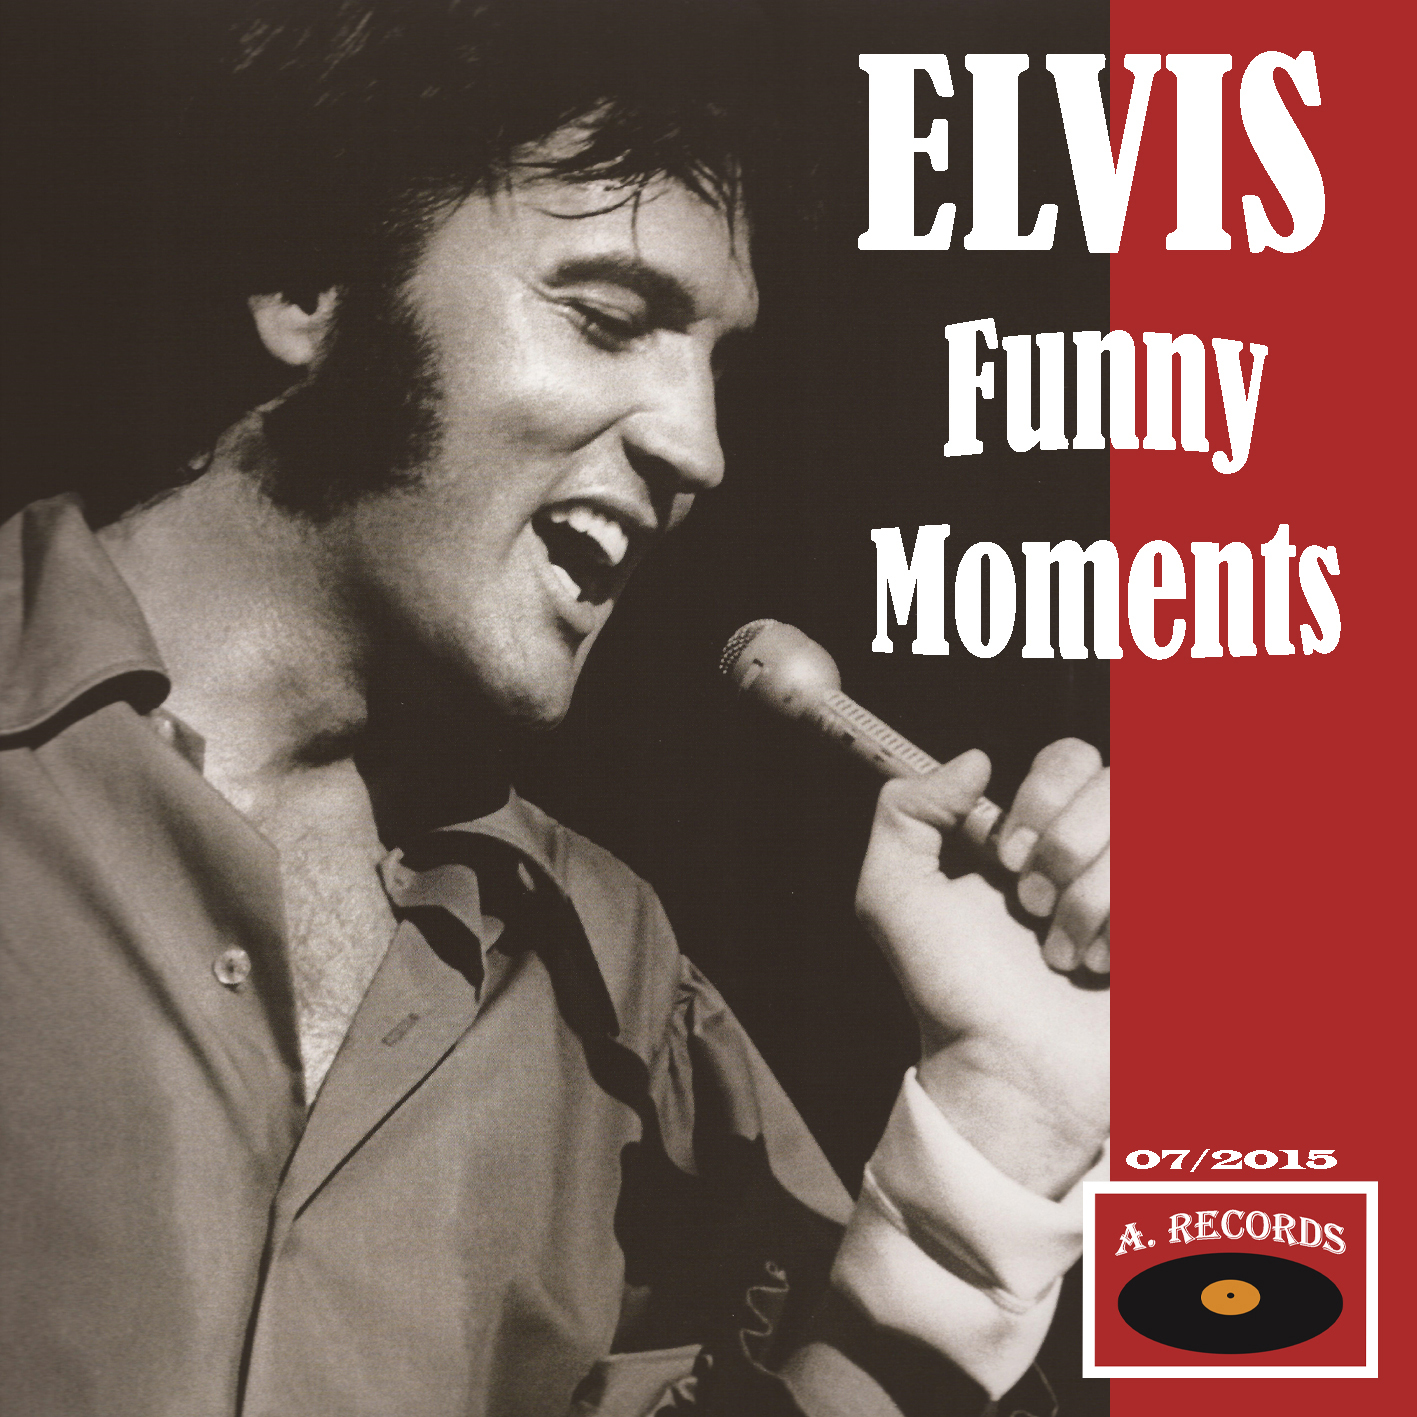 Elvis Funny Moments (July 2015)